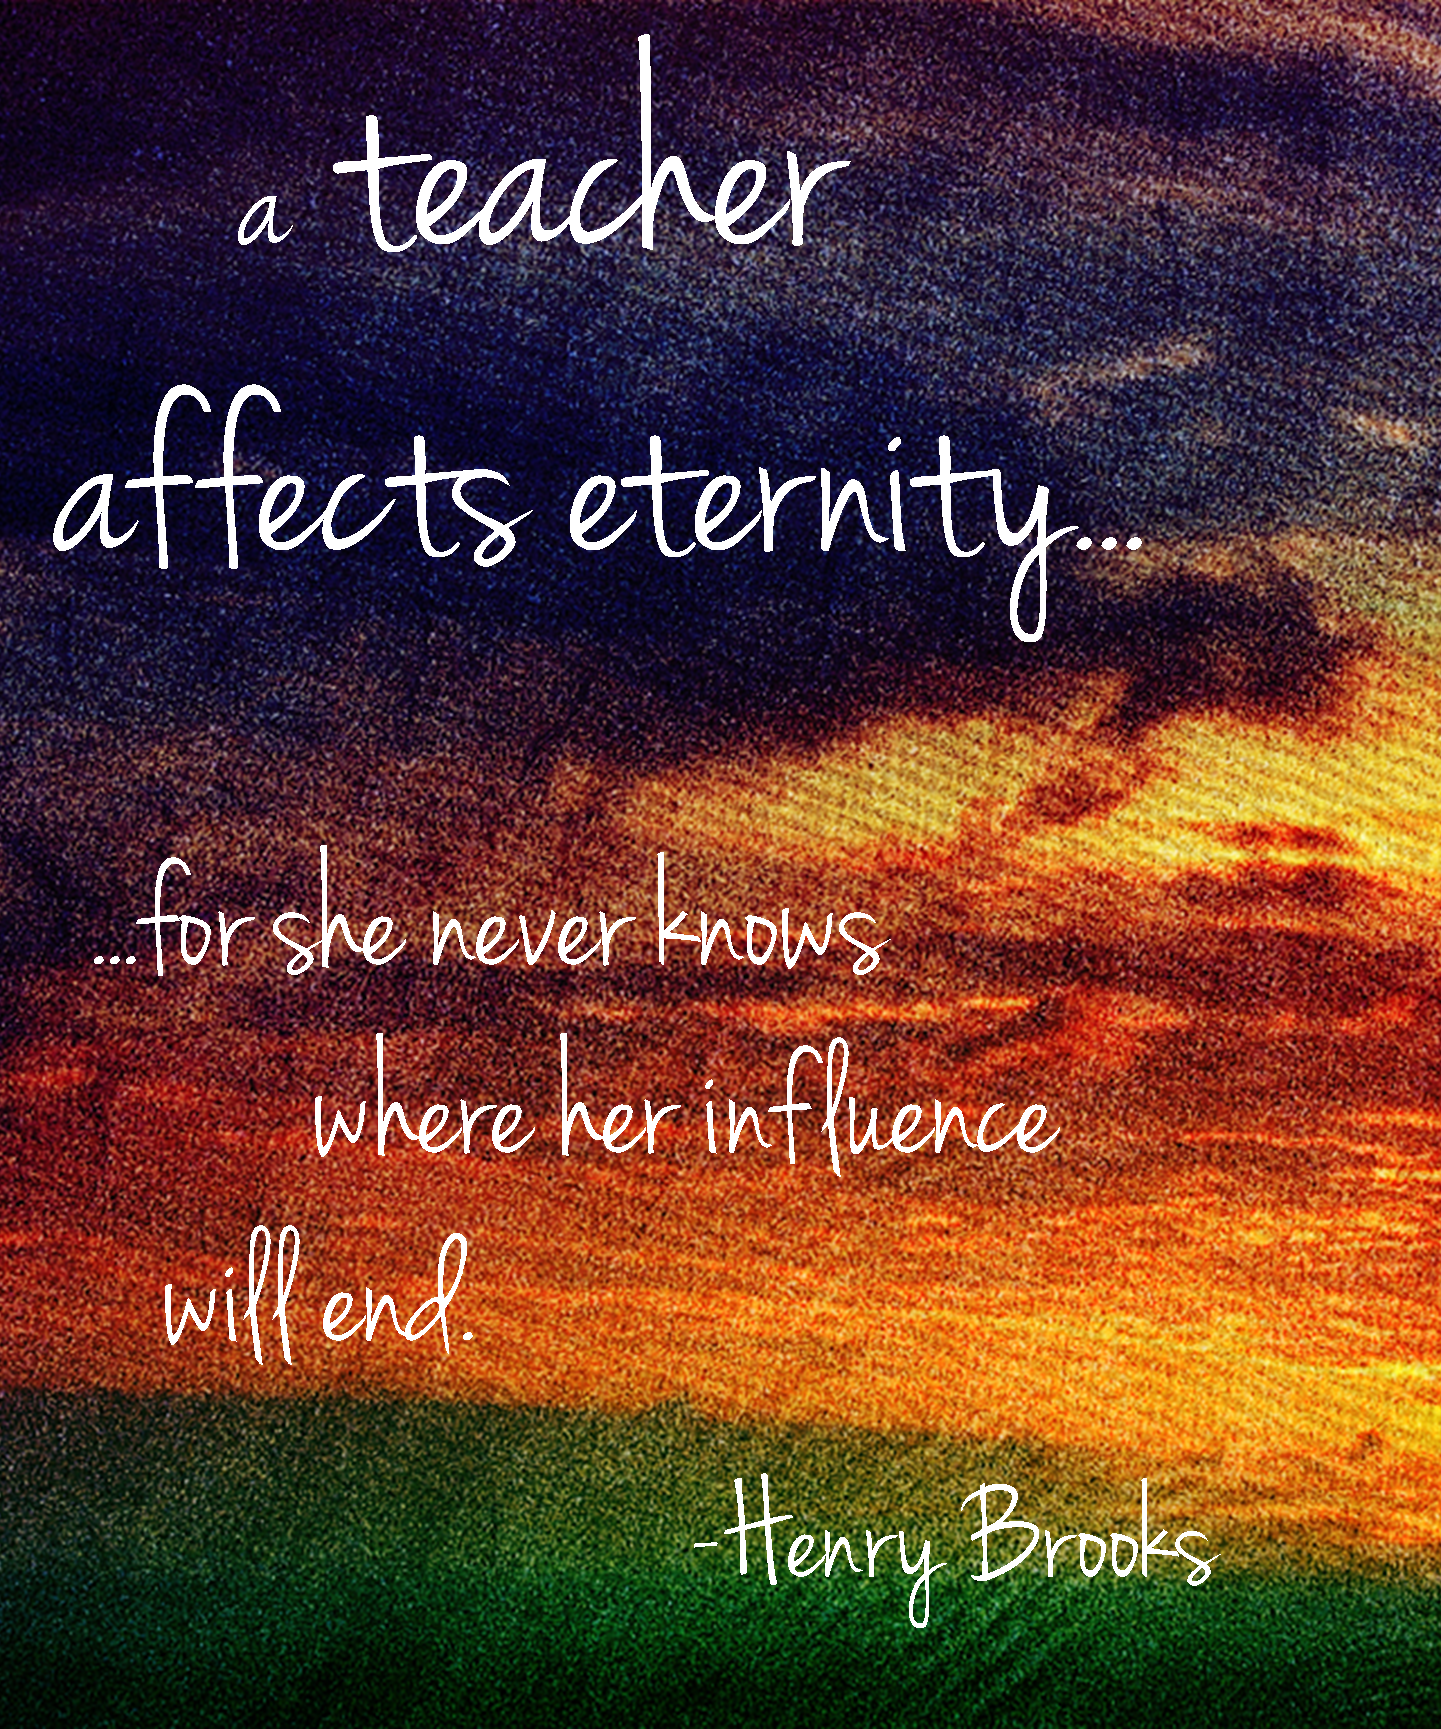 Pin by Stacey on Special ed | Teacher appreciation quotes